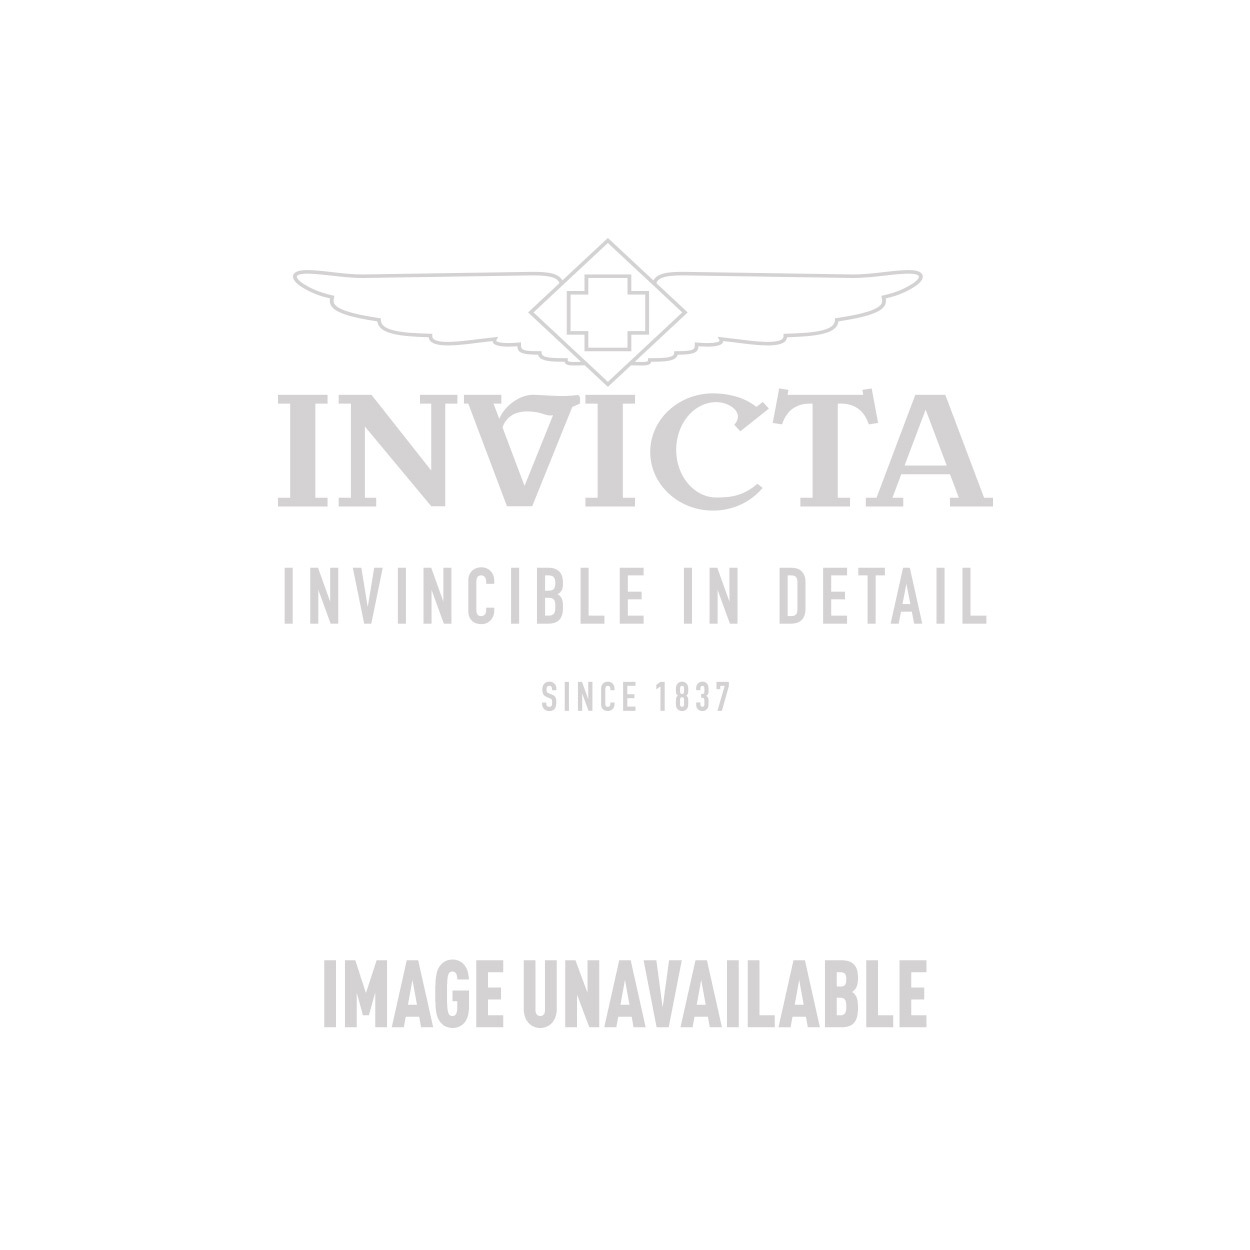 Invicta Pro Diver Quartz Watch - Stainless Steel case Stainless Steel band - Model 15251